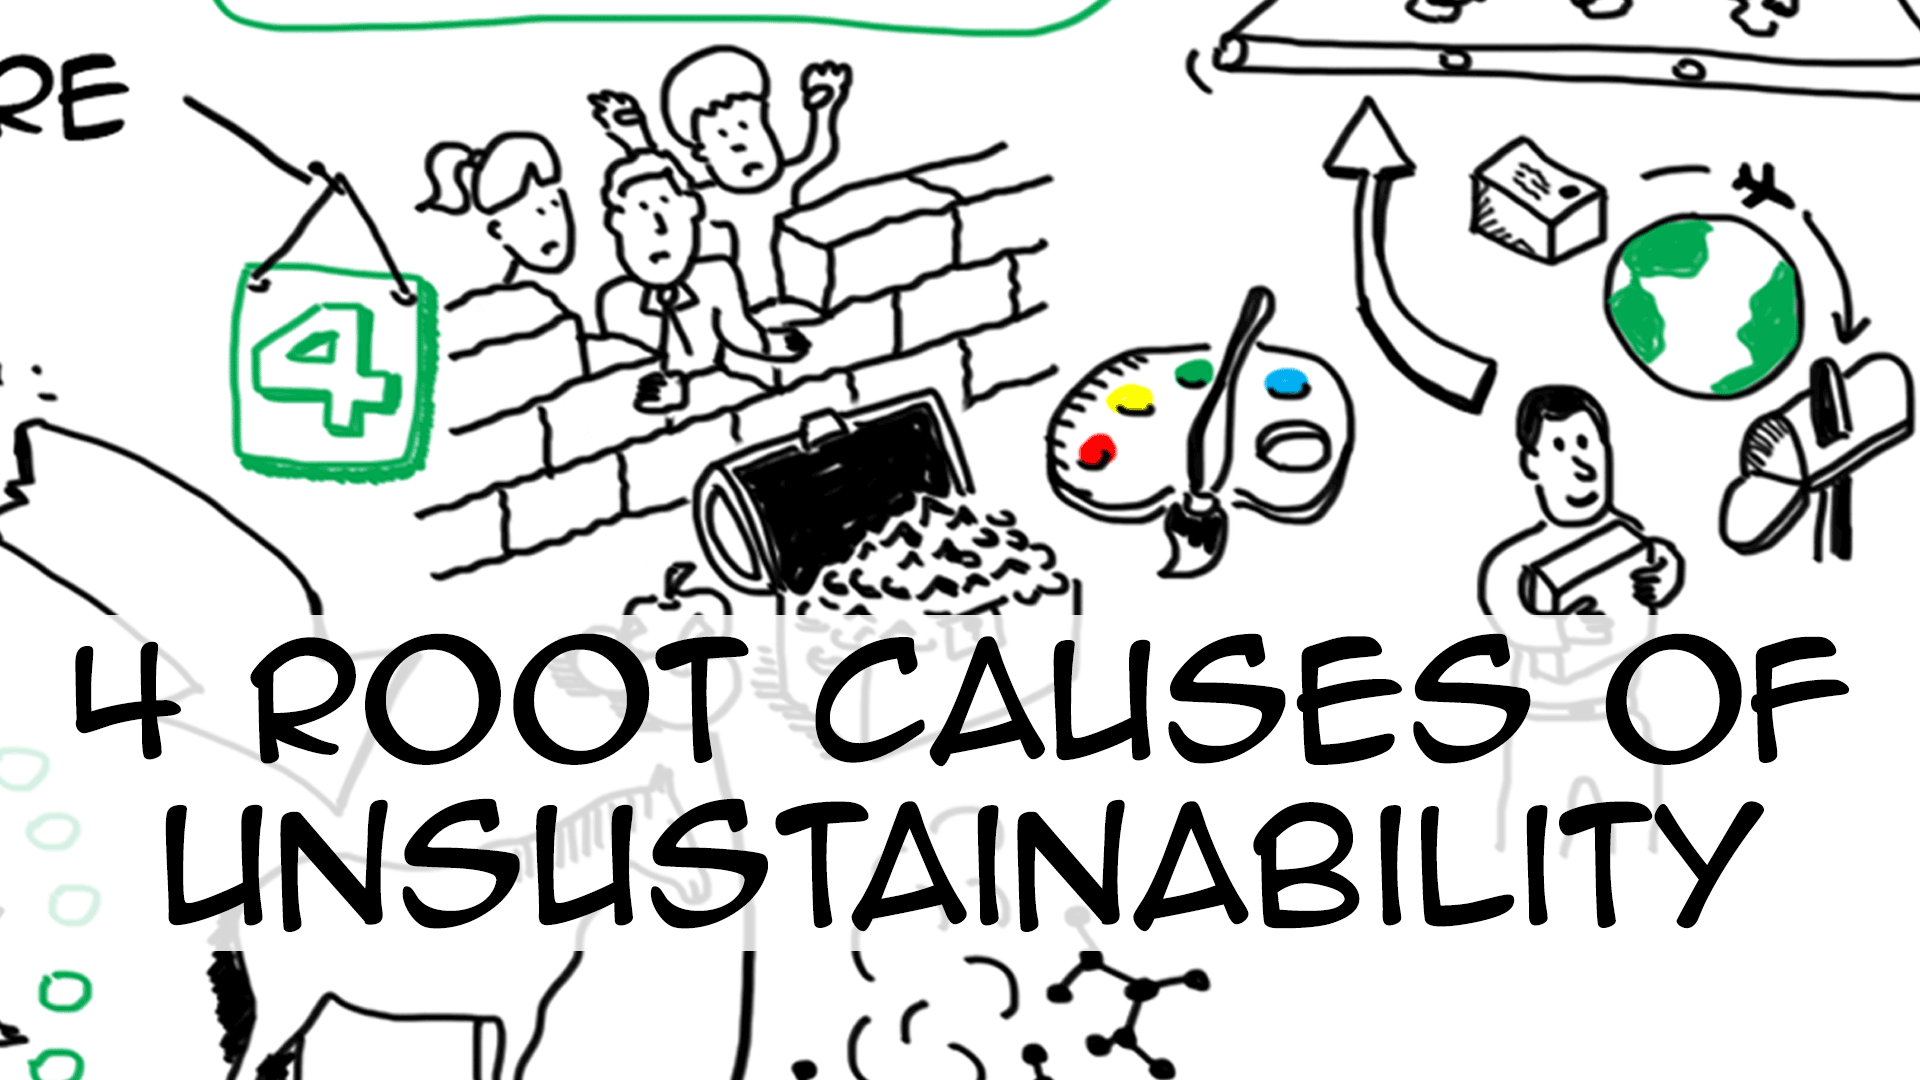 4 root causes of unsustainability?